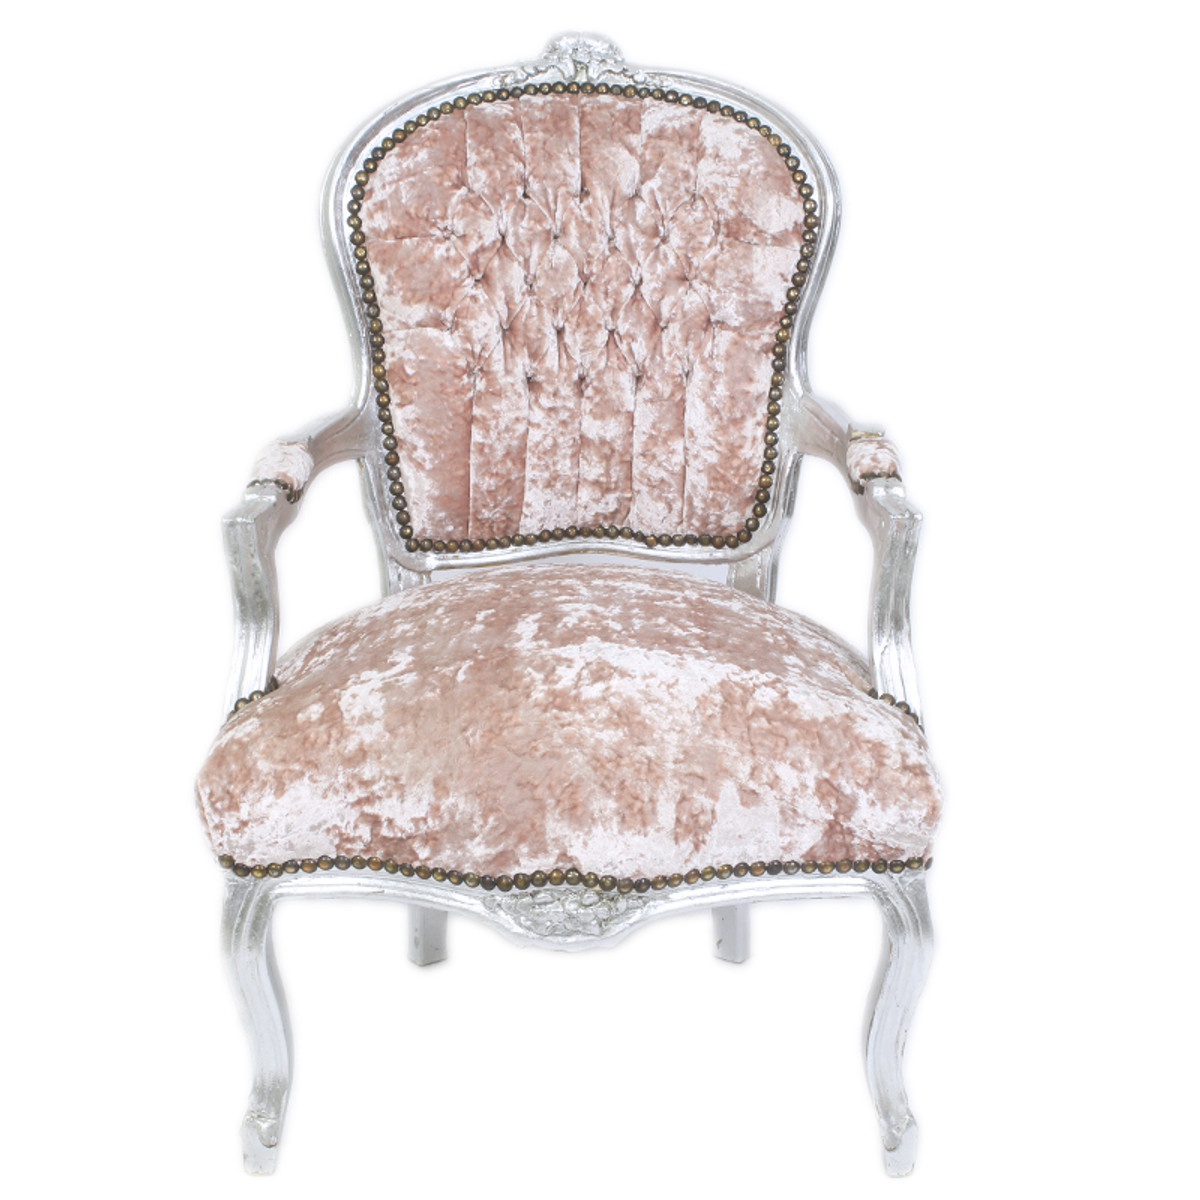 casa padrino baroque salon chair rose velor fabric. Black Bedroom Furniture Sets. Home Design Ideas